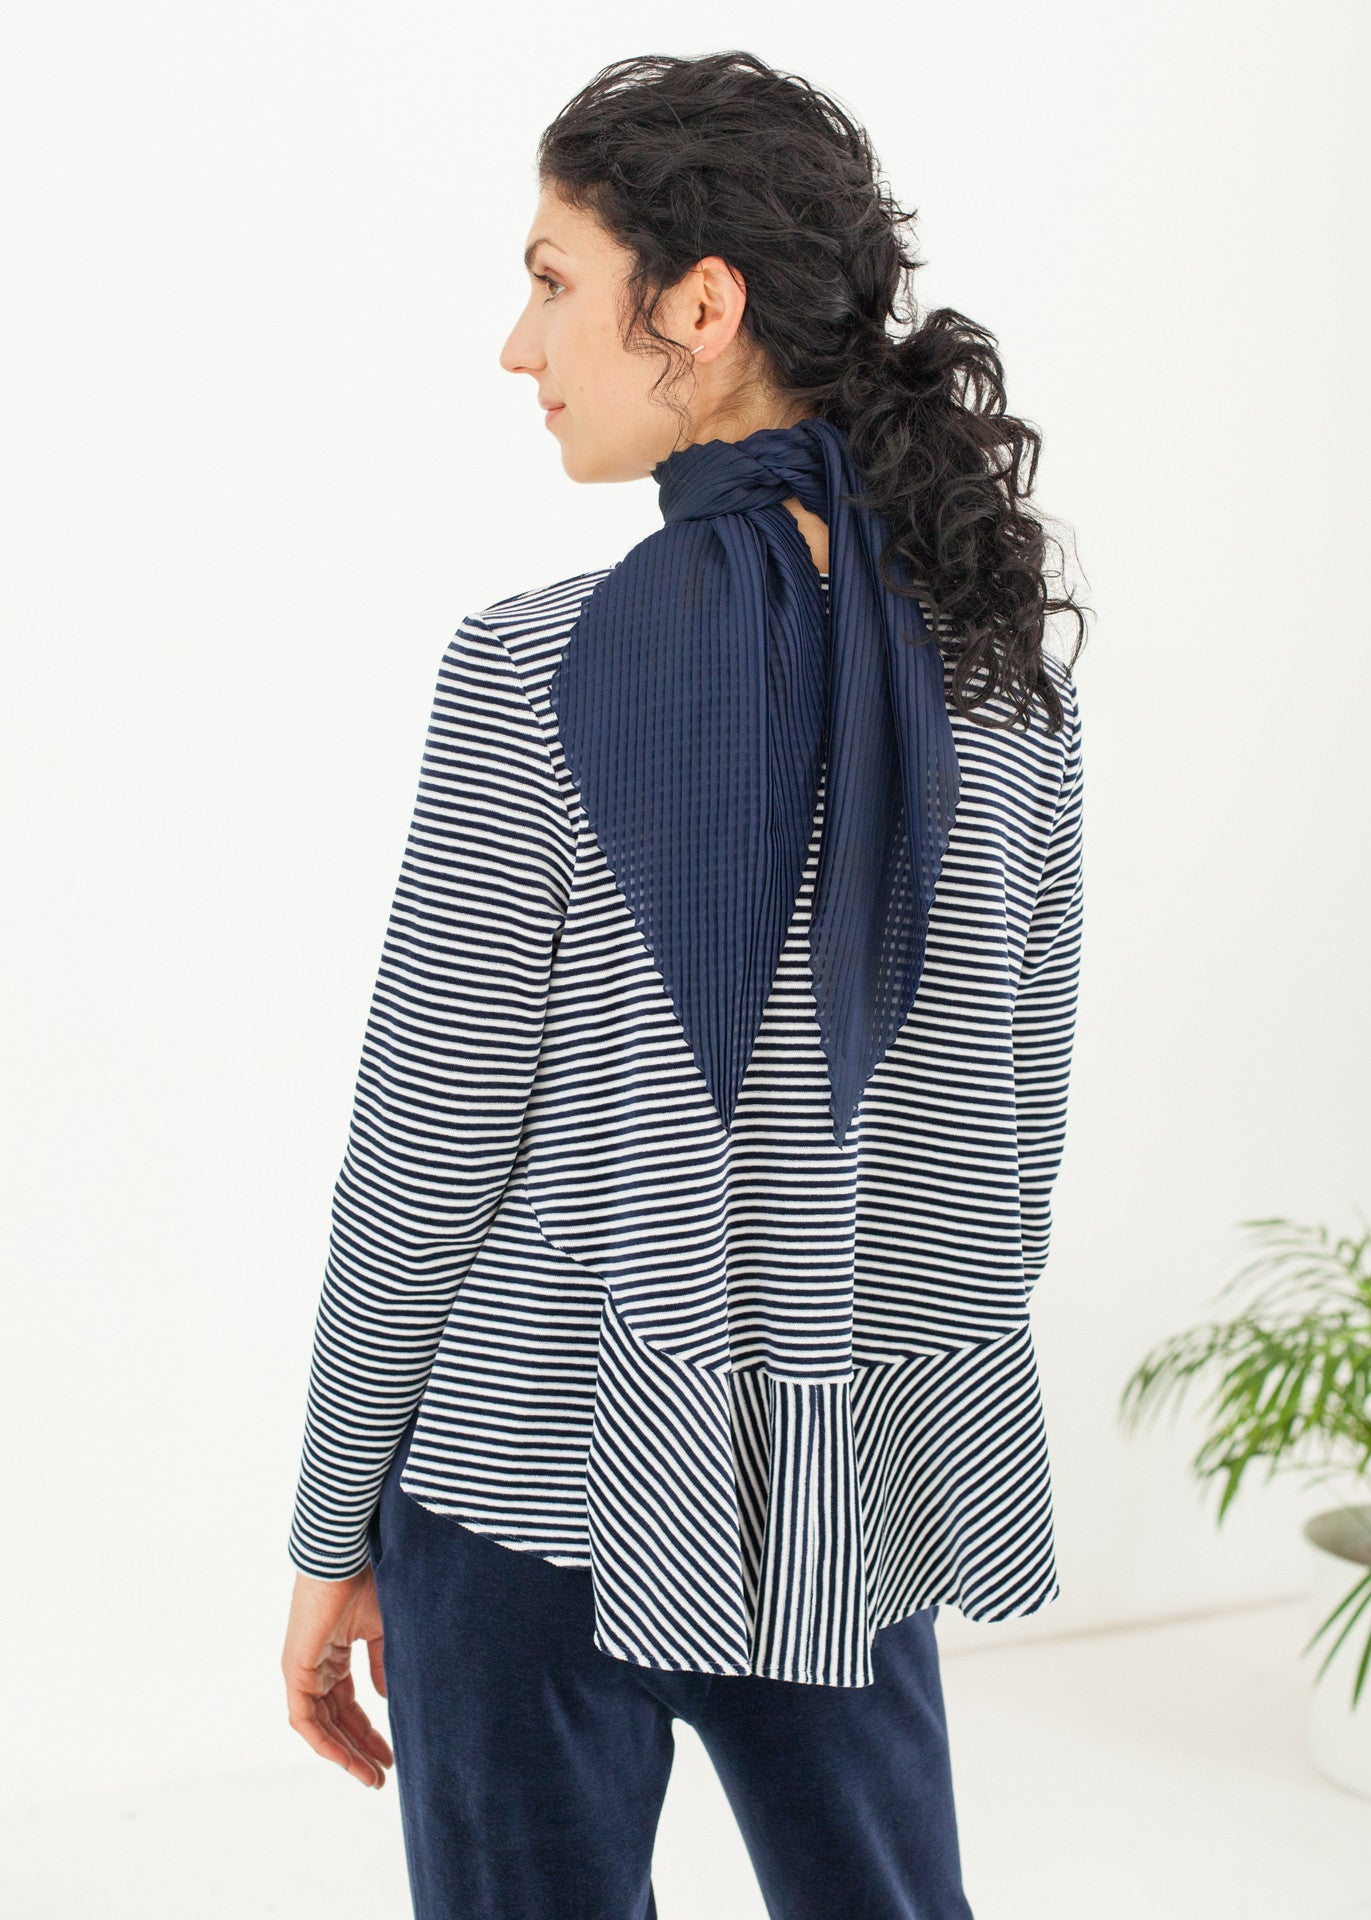 Take a line for a walk - Striped Top